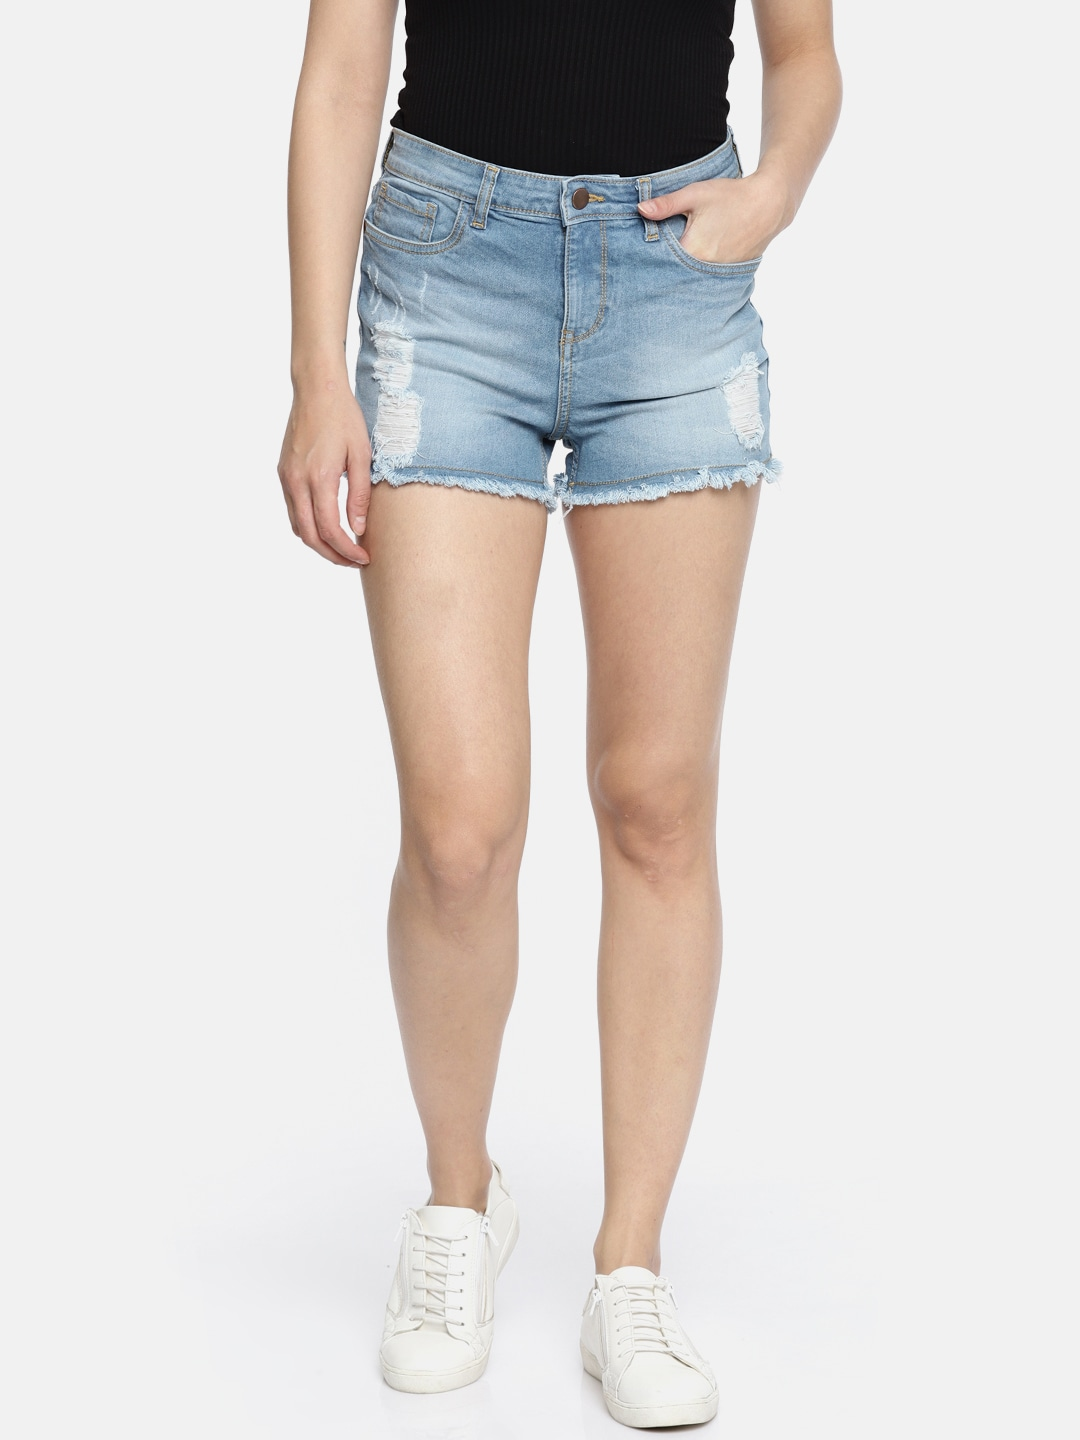 f7999cacd Jeans Short Skirt And Top | Saddha